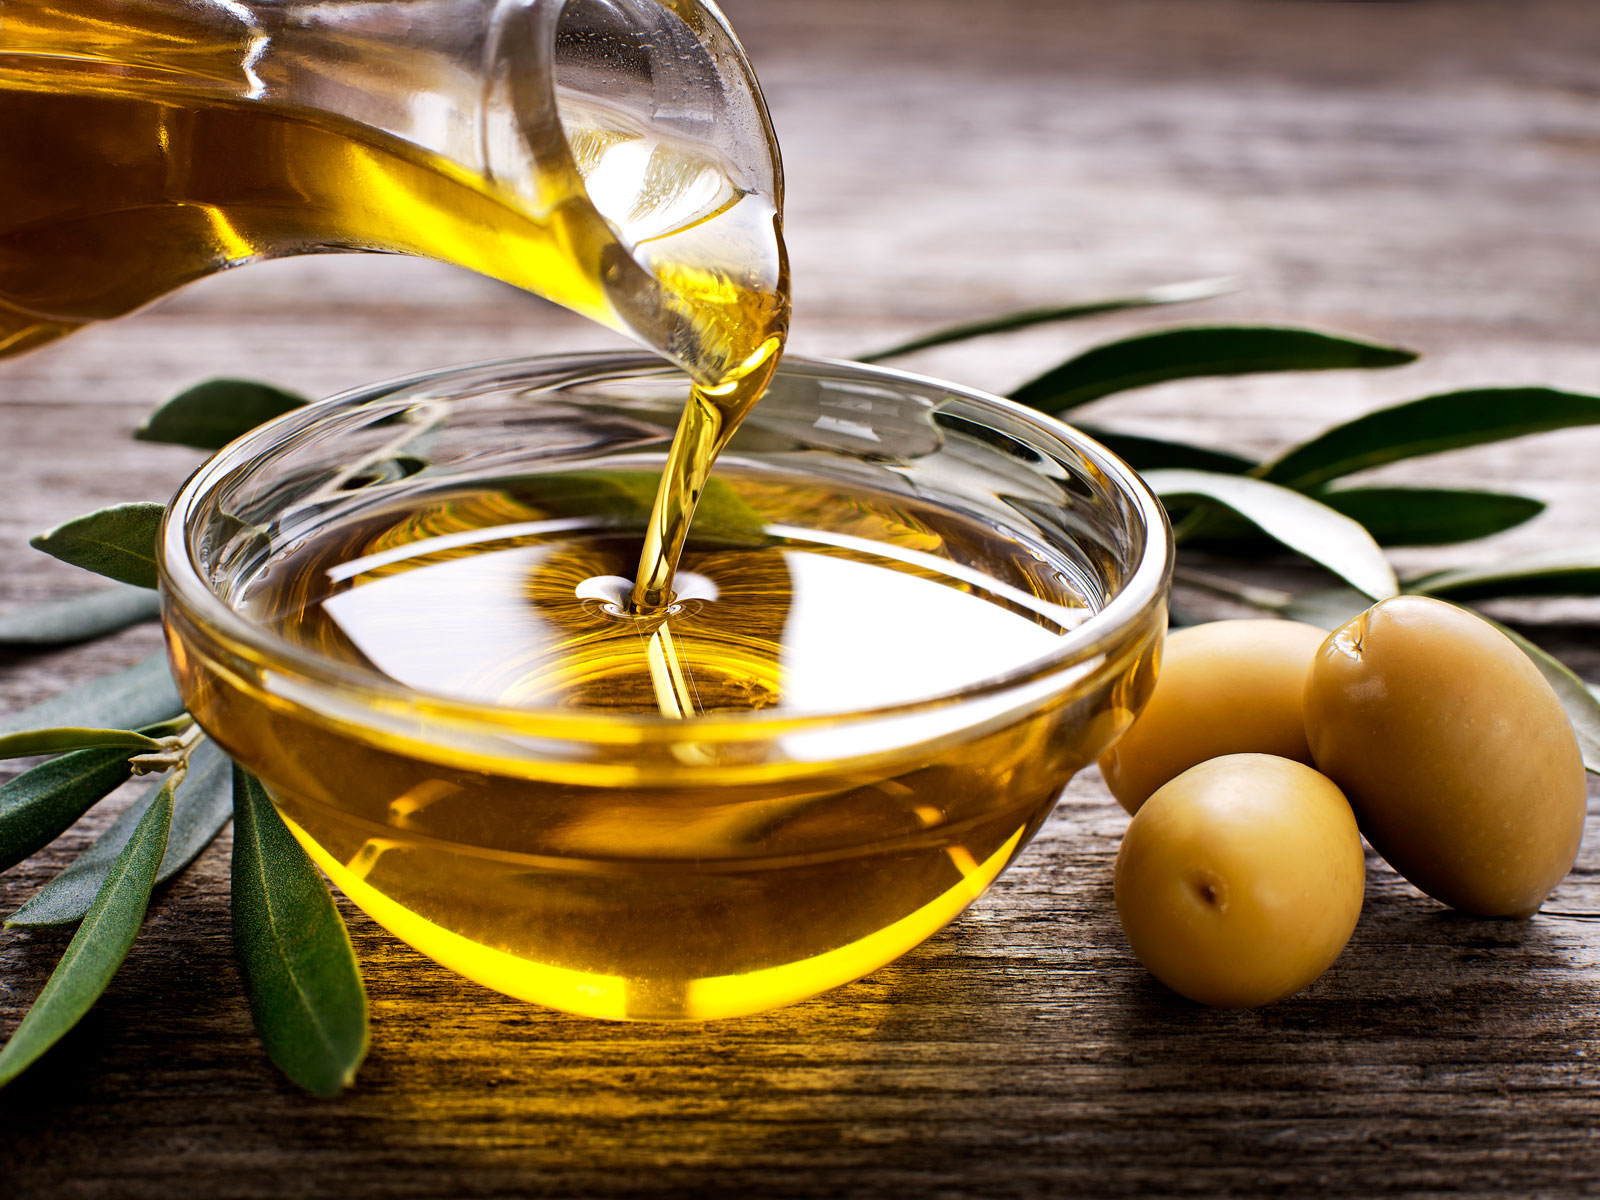 olive-oil-fda-standards-FT-BLOG1119.jpg